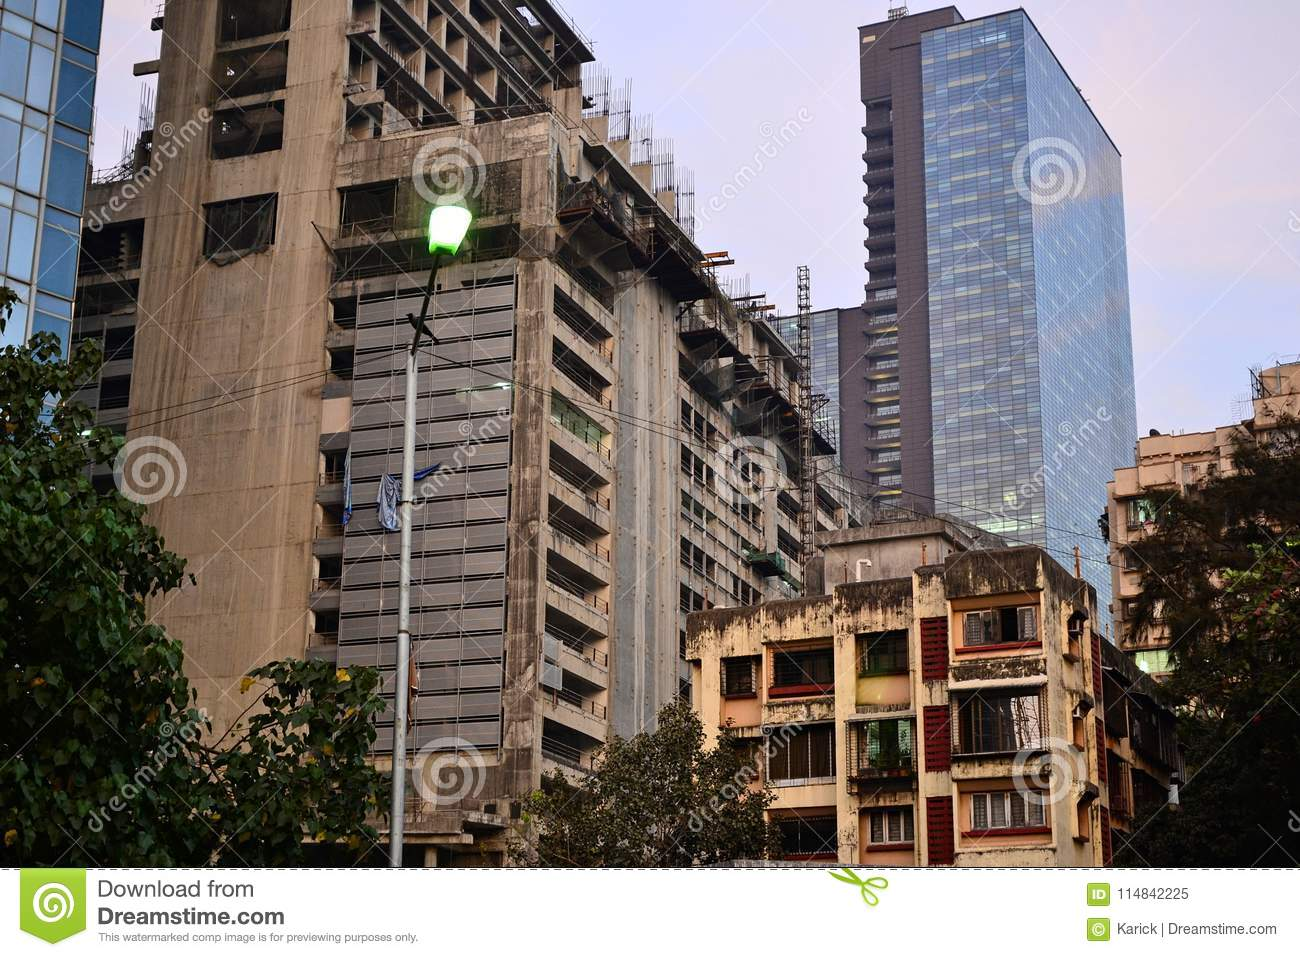 old and modern buildings in mumbai stock image image of finance